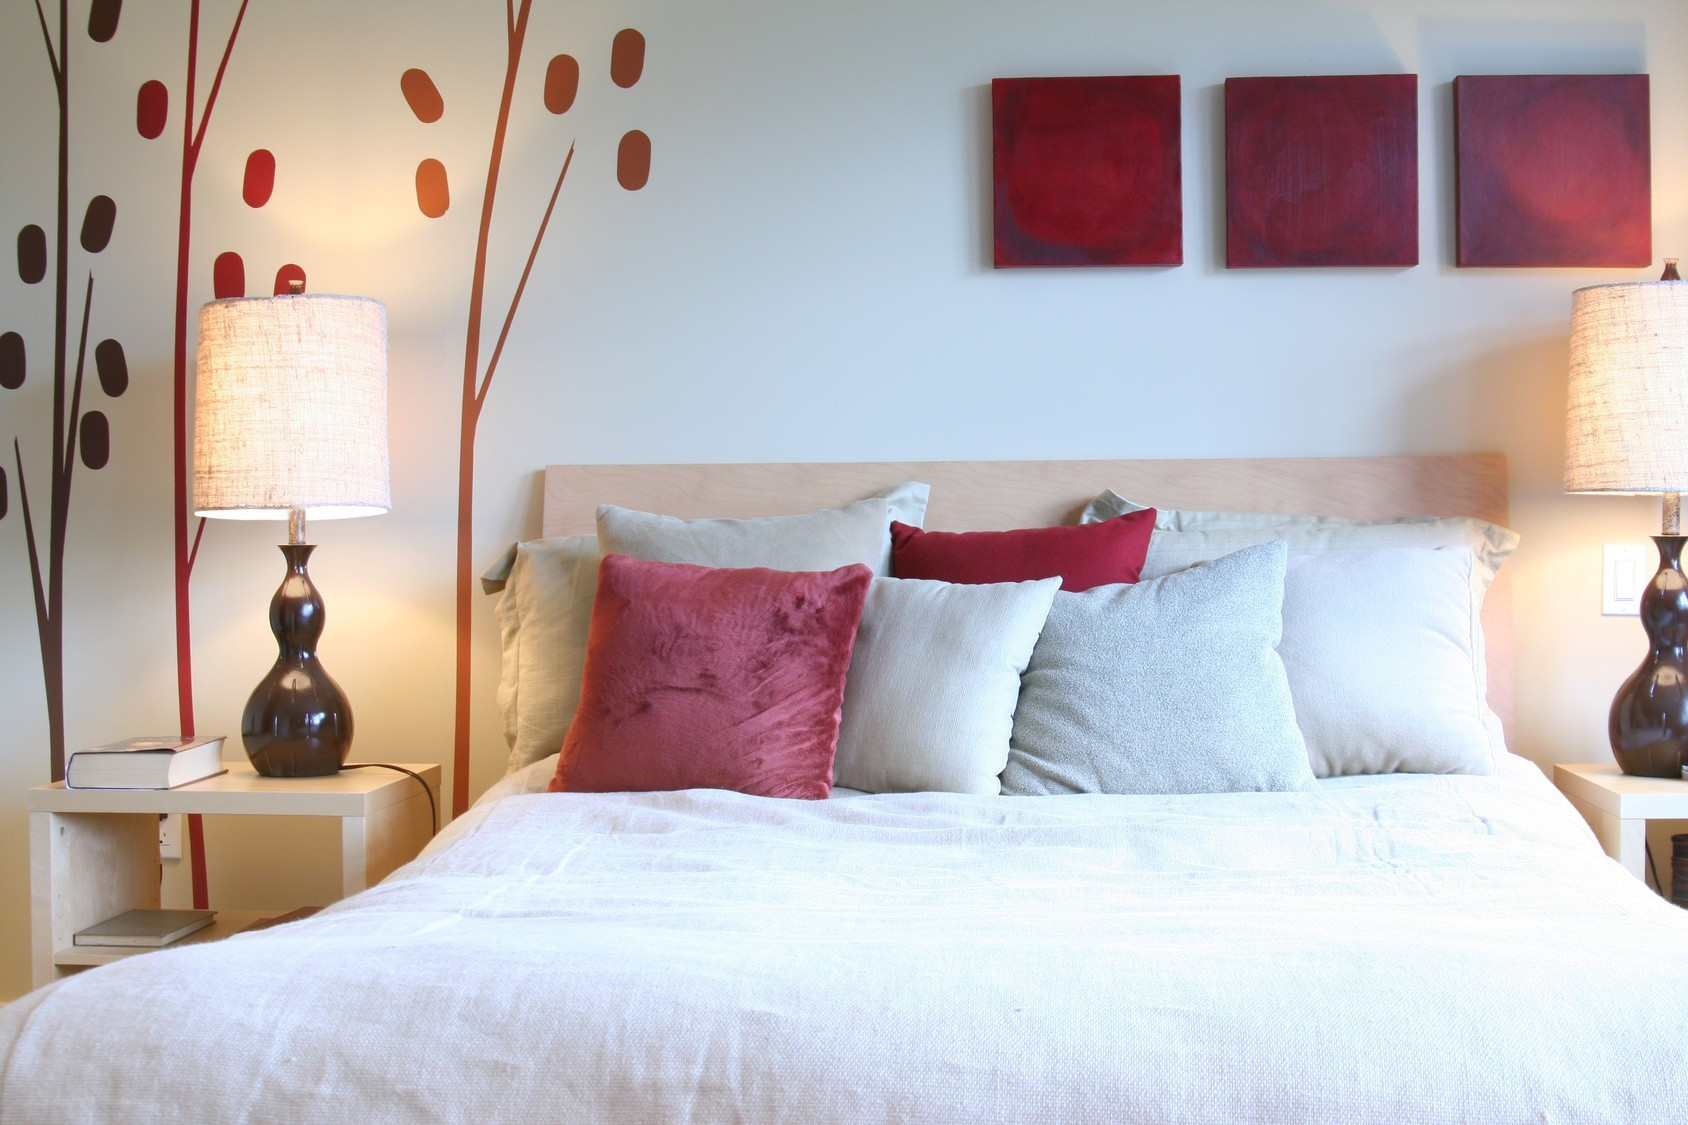 Best ideas about Feng Shui Bedroom . Save or Pin feng shui bedrooms Now.